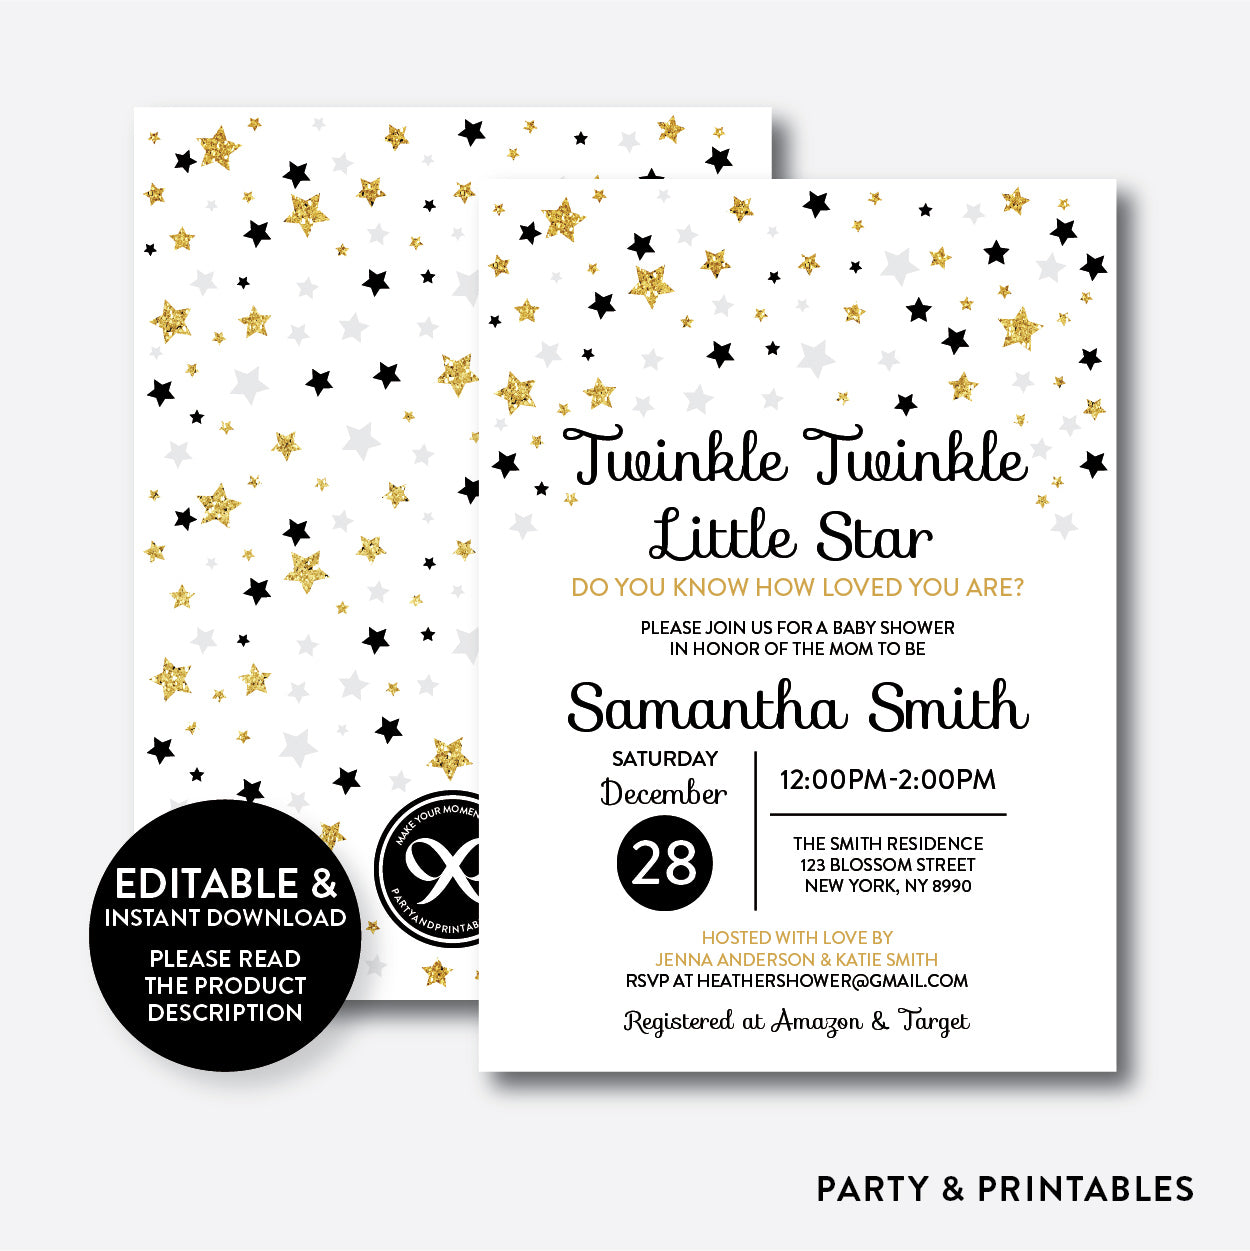 Twinkle Twinkle Little Star Baby Shower Invitation Editable